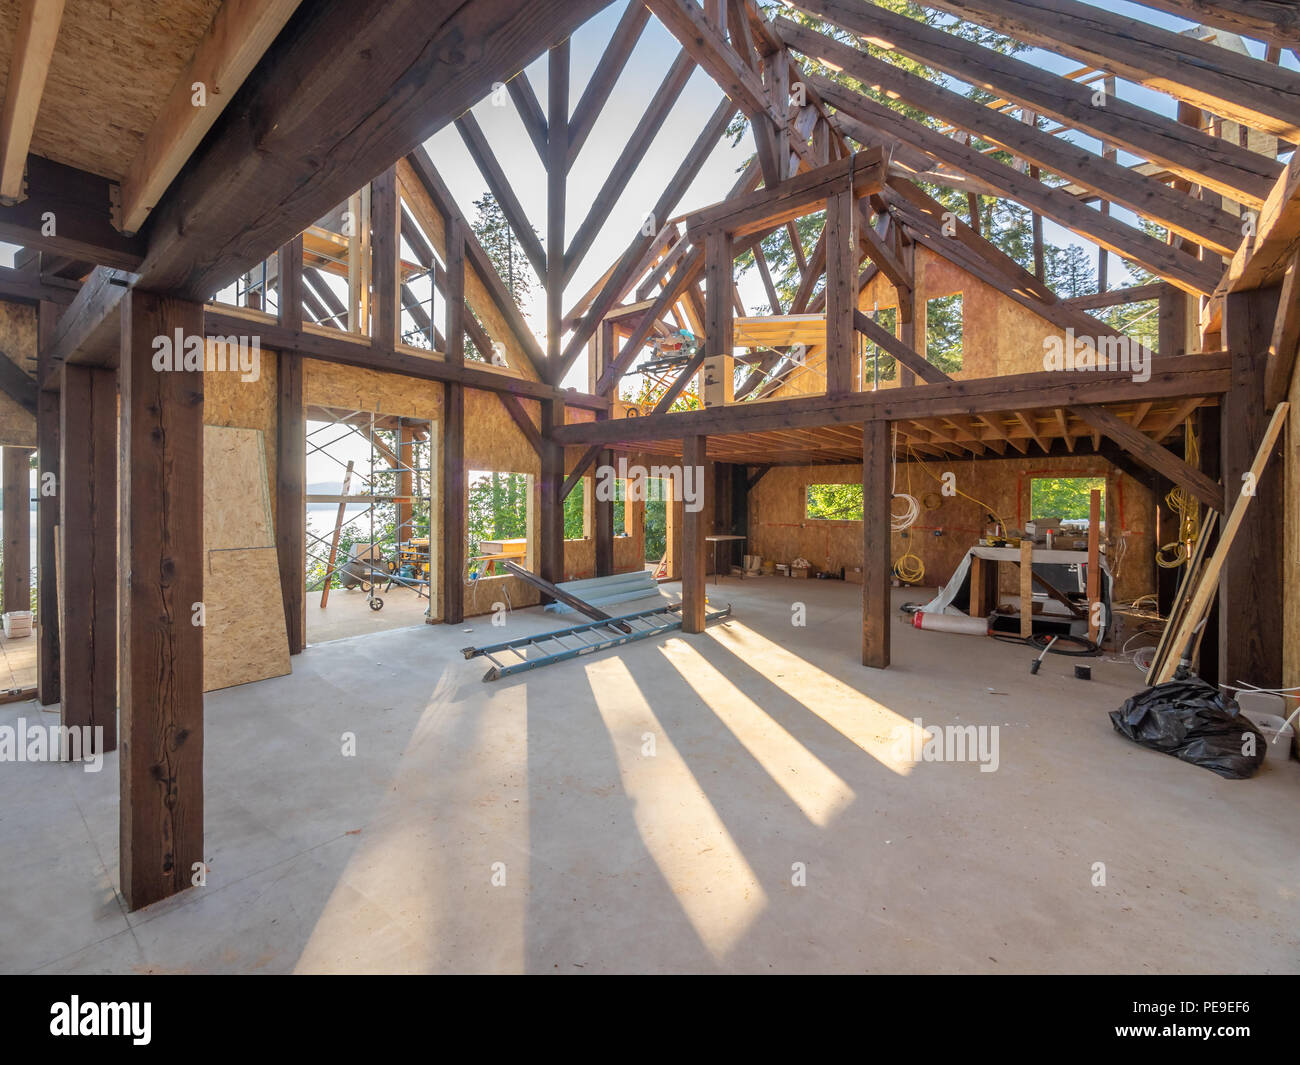 Interior of a modern post and beam house construction - Stock Image